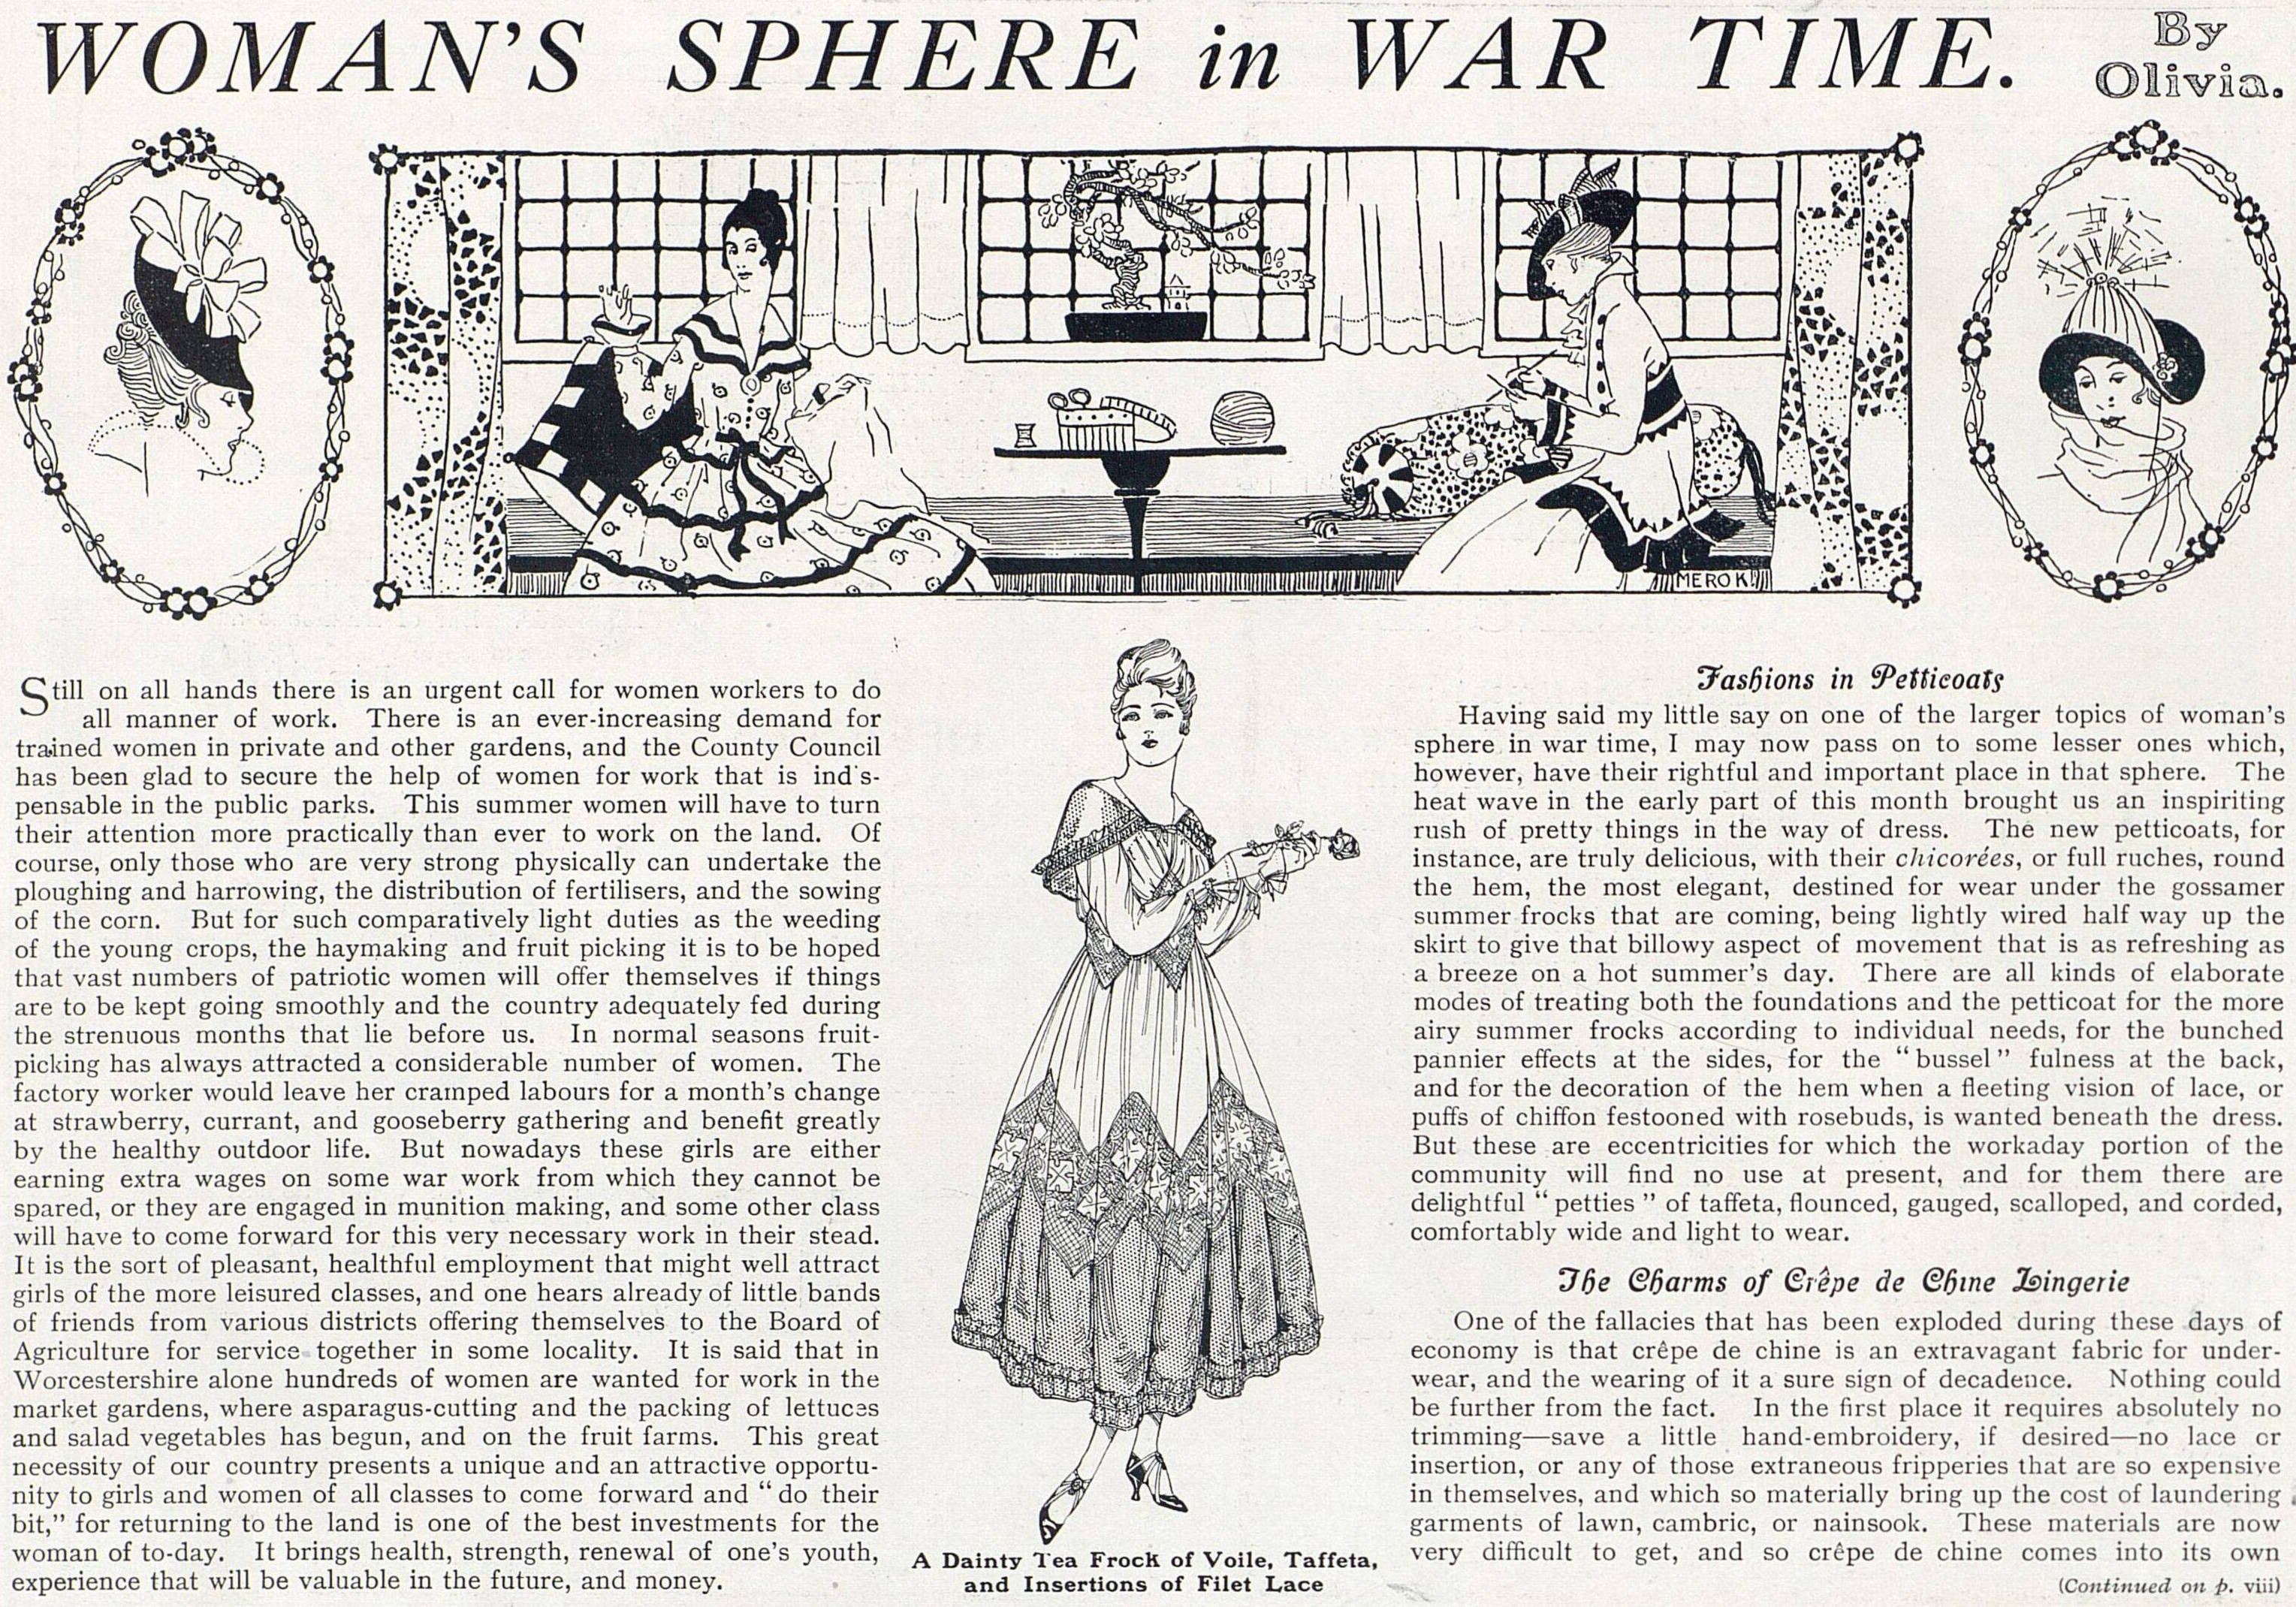 WomansSphereInWarTime_20May1916